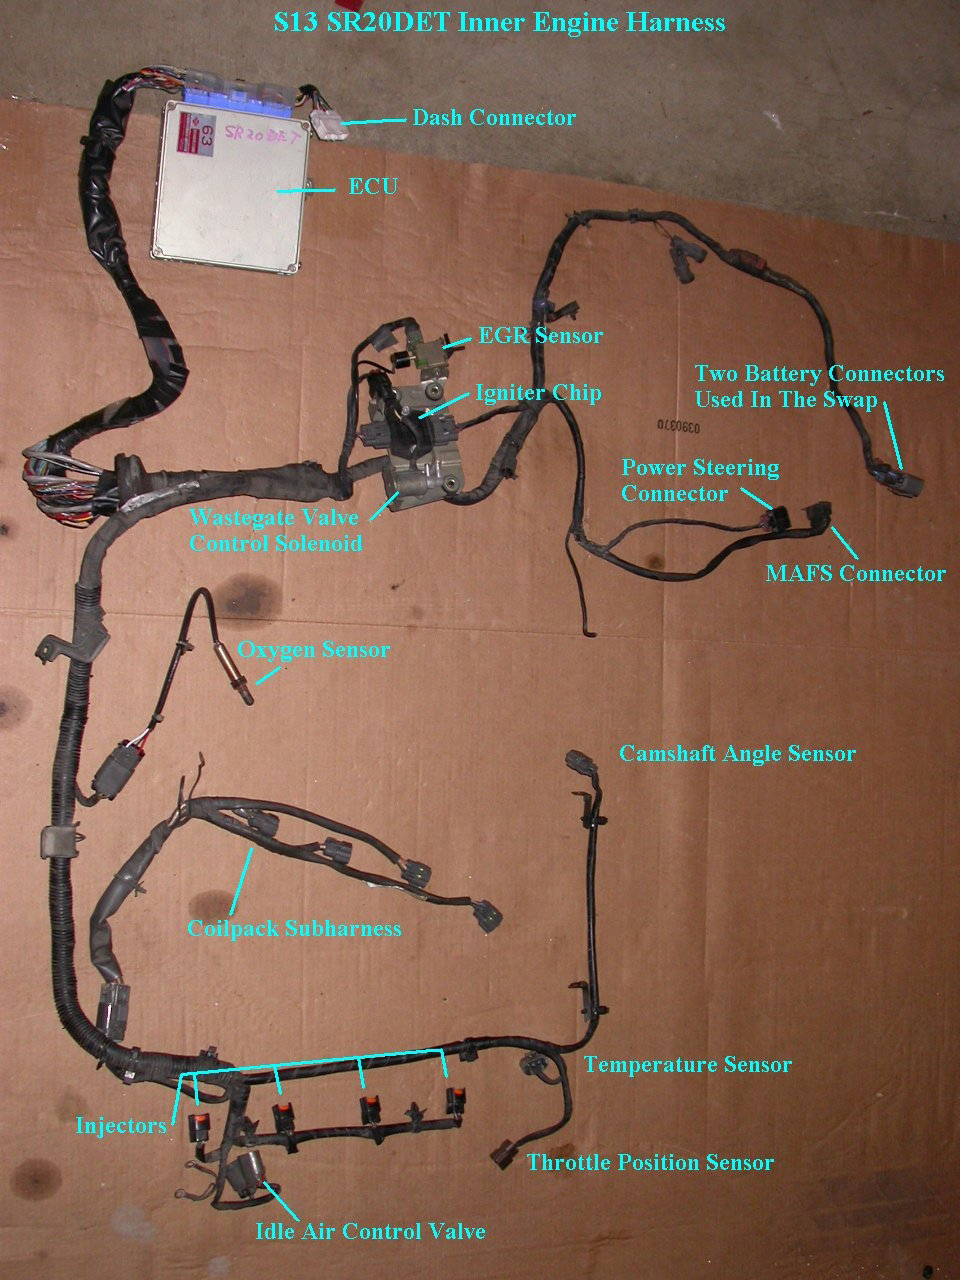 180sx wiring diagram 180sx car wiring diagram download, block diagram, rb25 alternator wiring diagram